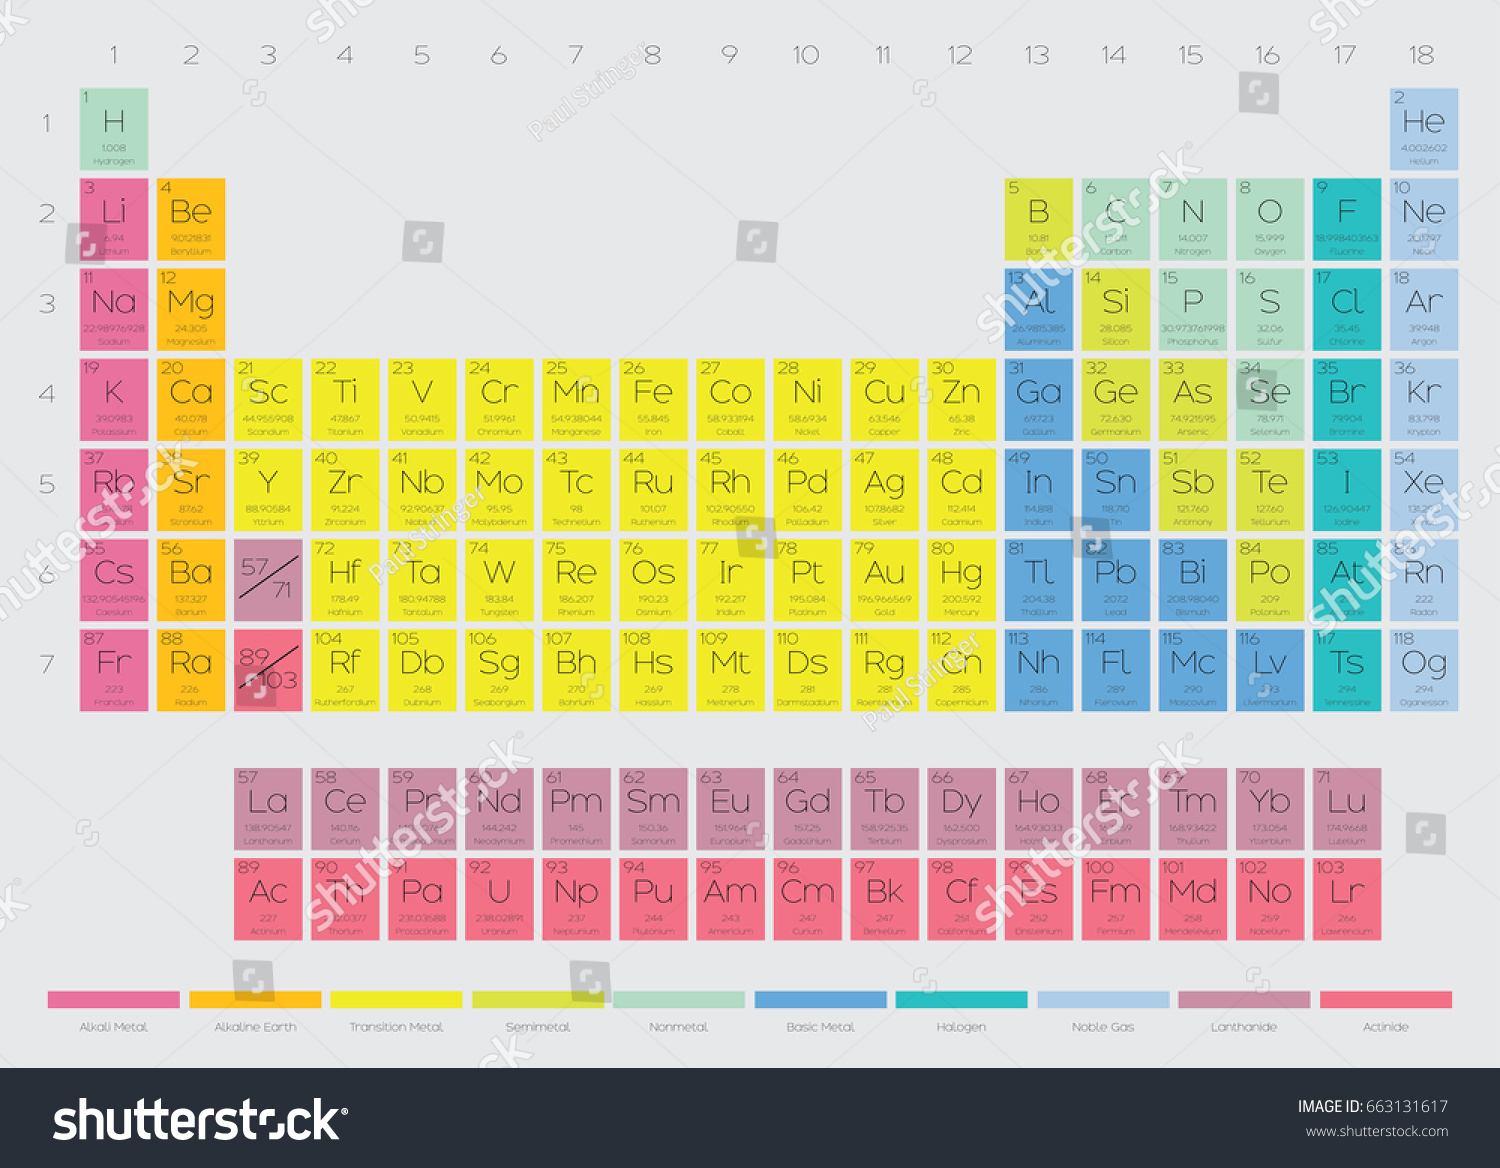 Sn symbol periodic table image collections periodic table images k element periodic table images periodic table images sn symbol periodic table image collections periodic table gamestrikefo Images